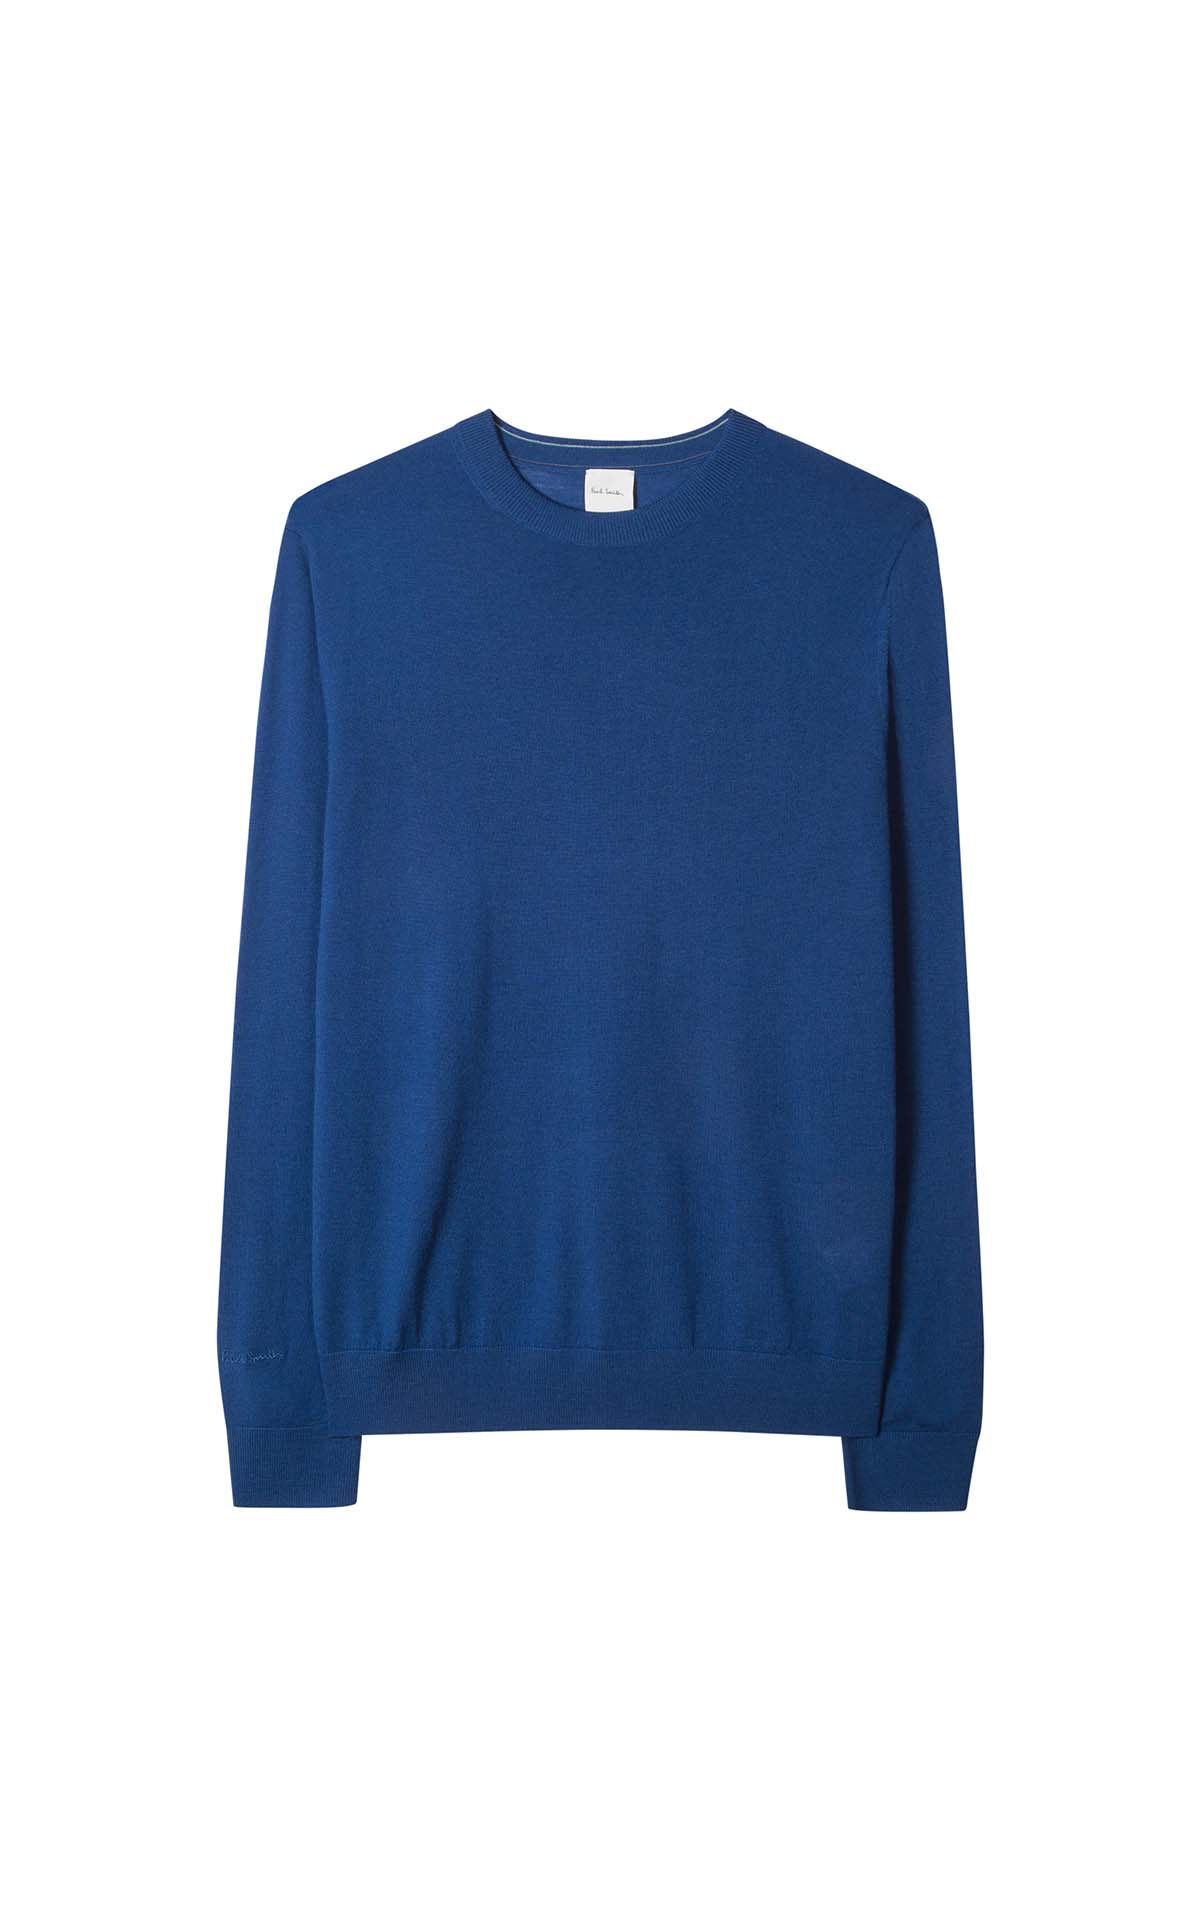 Paul Smith Men's Jumper at The Bicester Village Shopping Collection